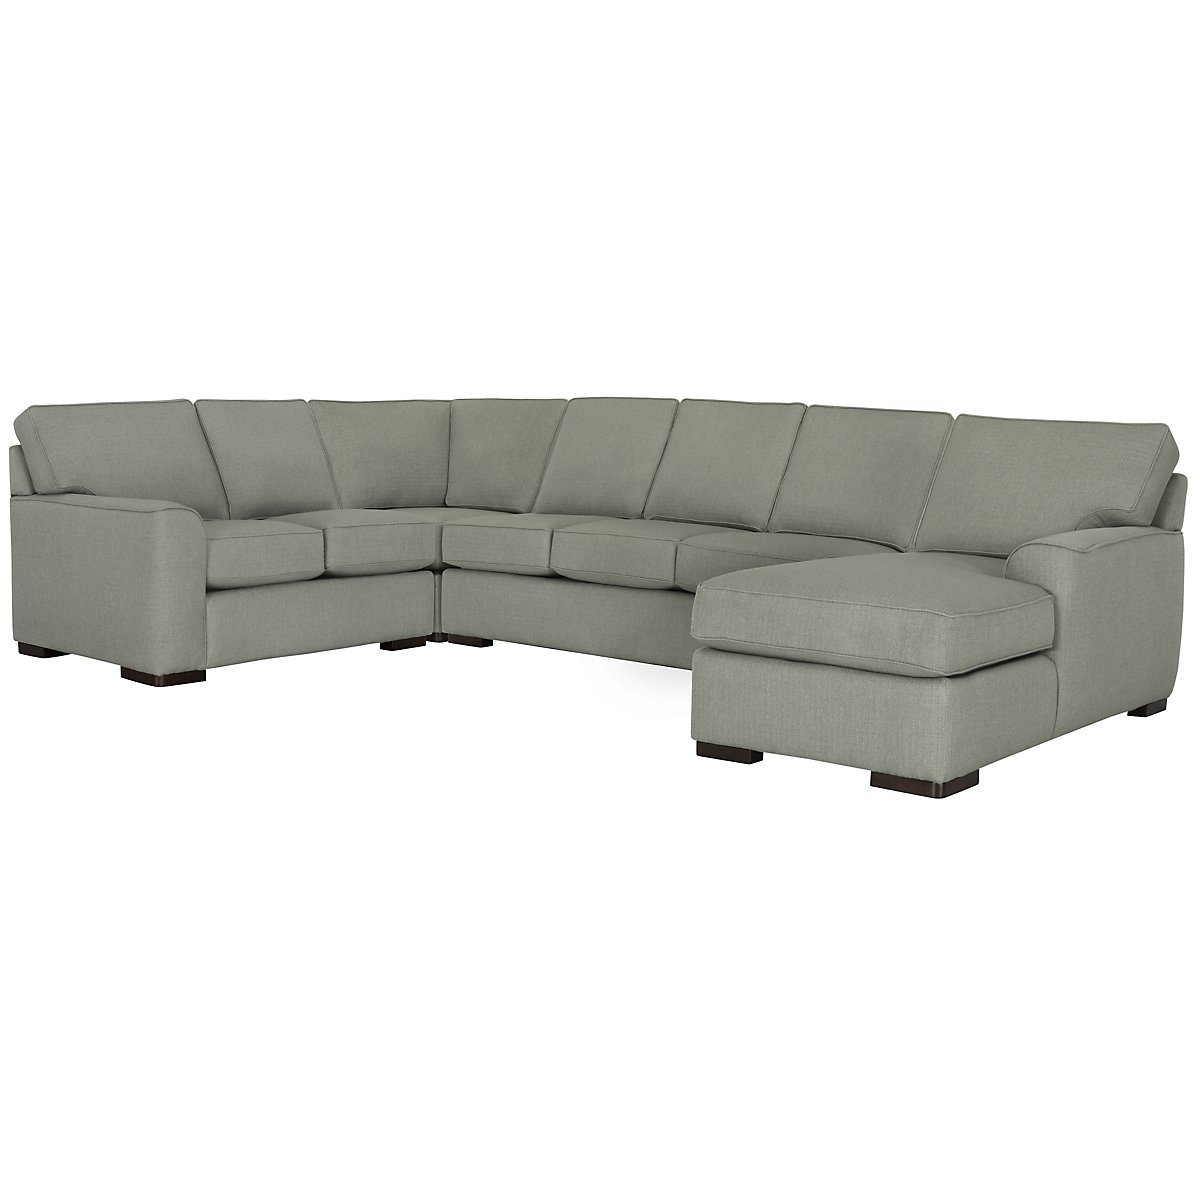 Austin Green Fabric Right Chaise Innerspring Sleeper Sectional